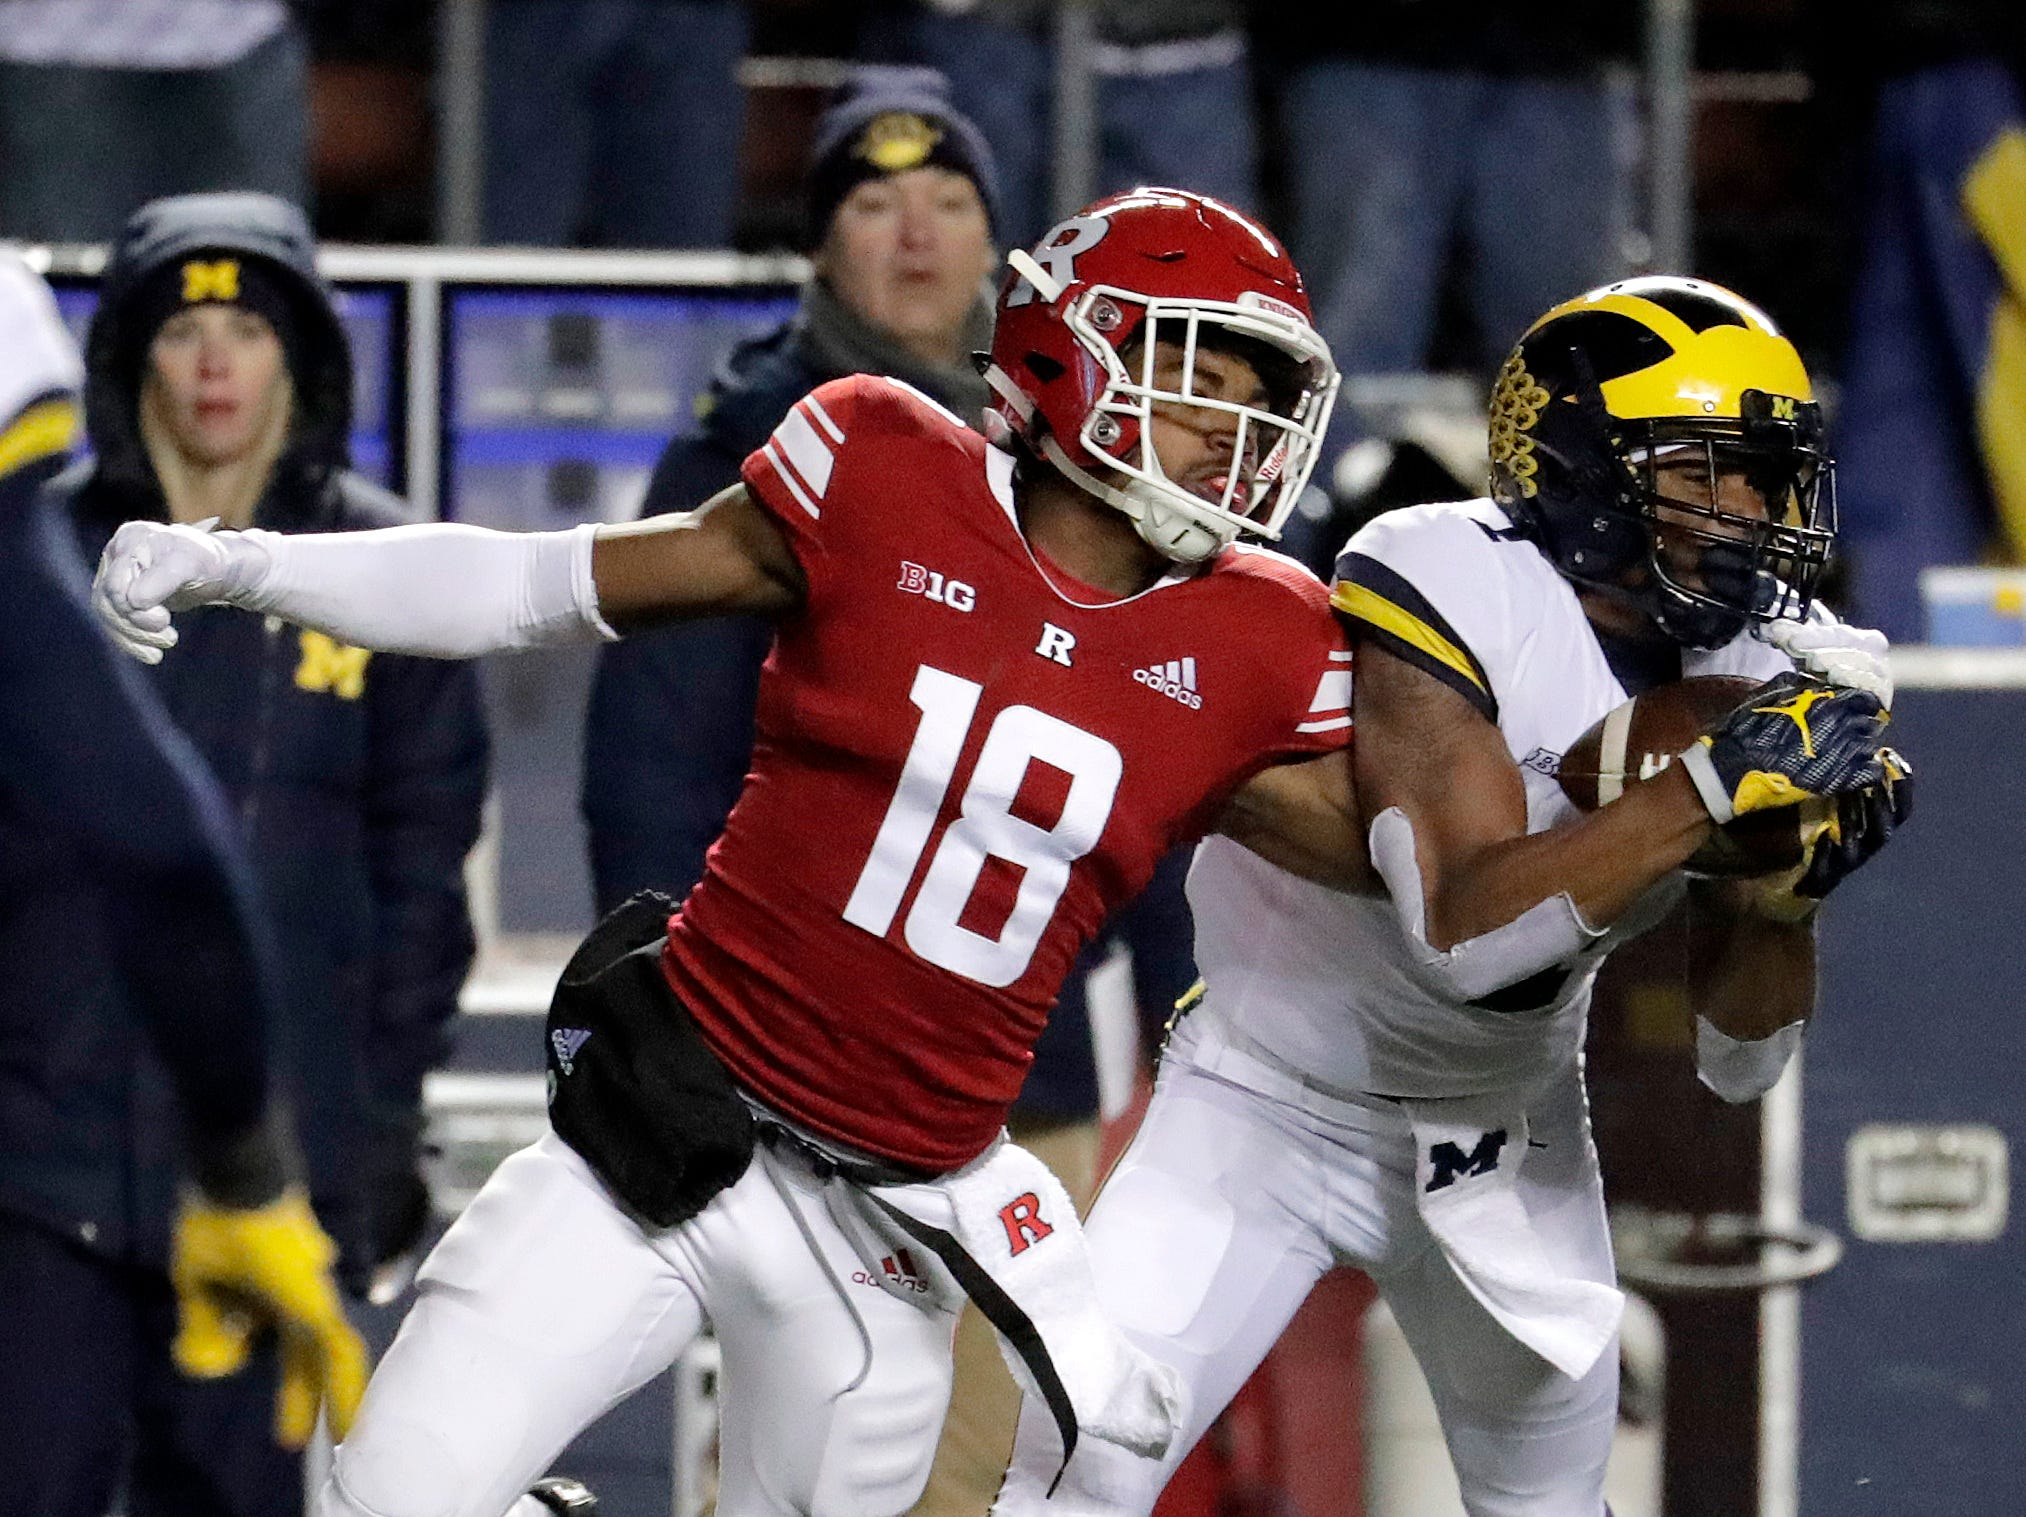 Michigan defensive back Ambry Thomas intercepts a pass from Rutgers quarterback Artur Sitkowski that was intended for wide receiver Bo Melton.